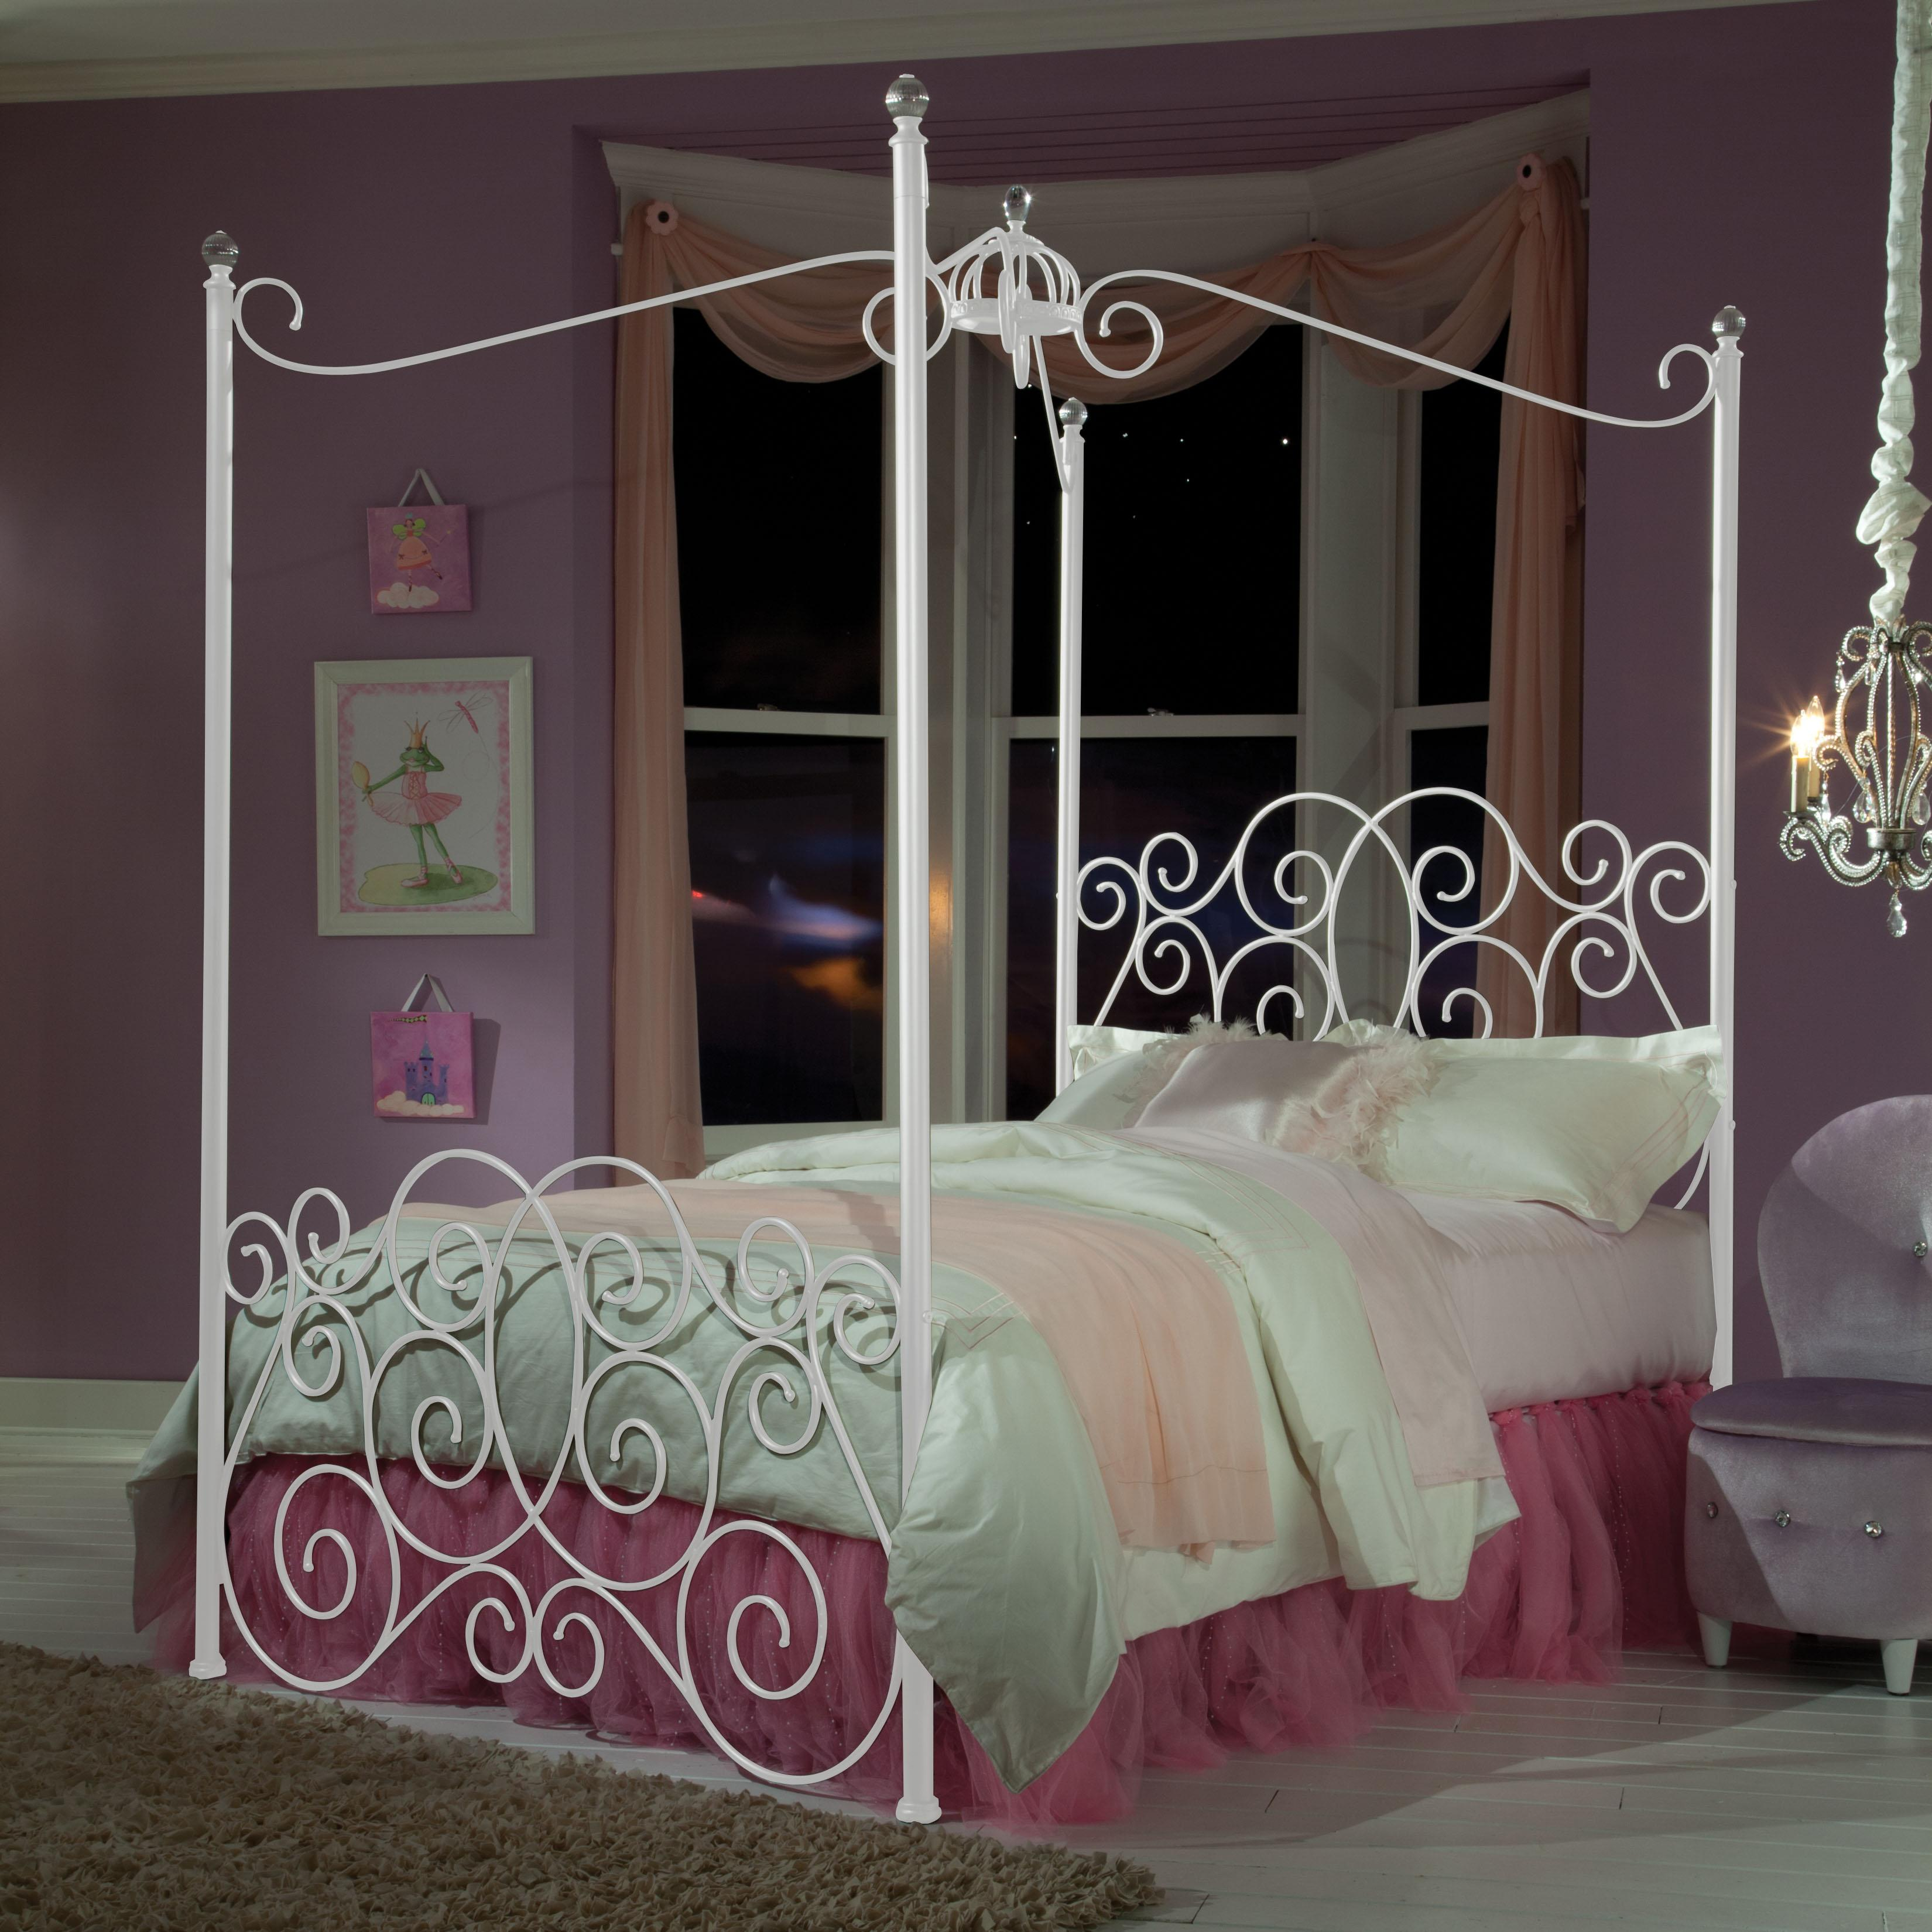 Princess Canopy Beds by Standard Furniture & Princess Canopy Beds (90030) by Standard Furniture - Adcock ...